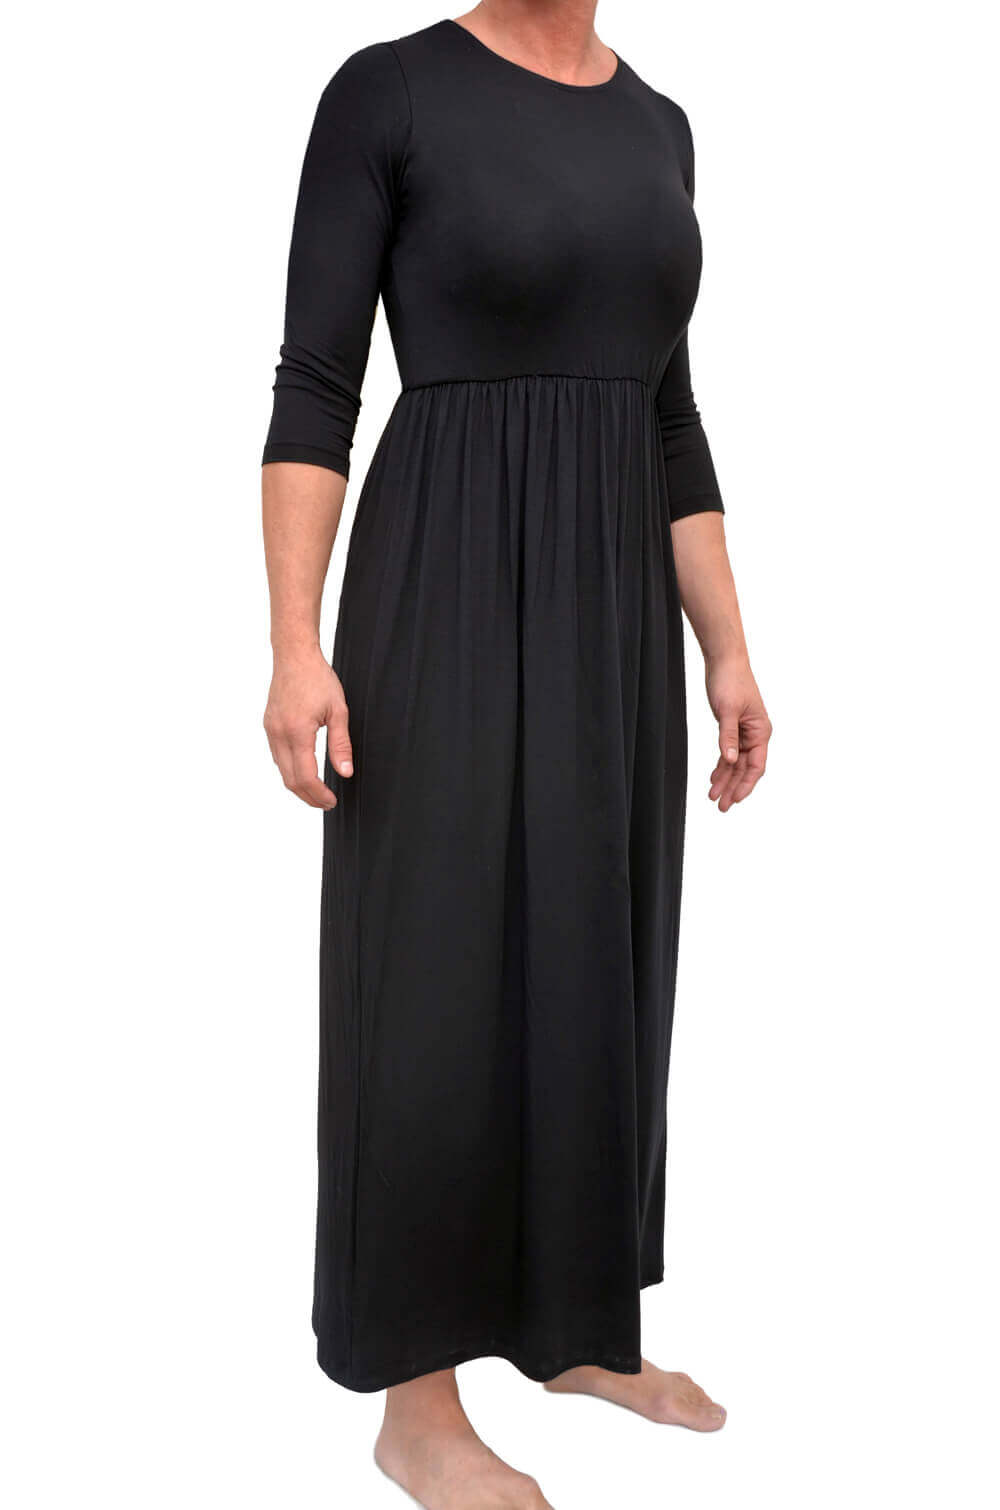 Women's Maxi Dress with Elastic Waistband